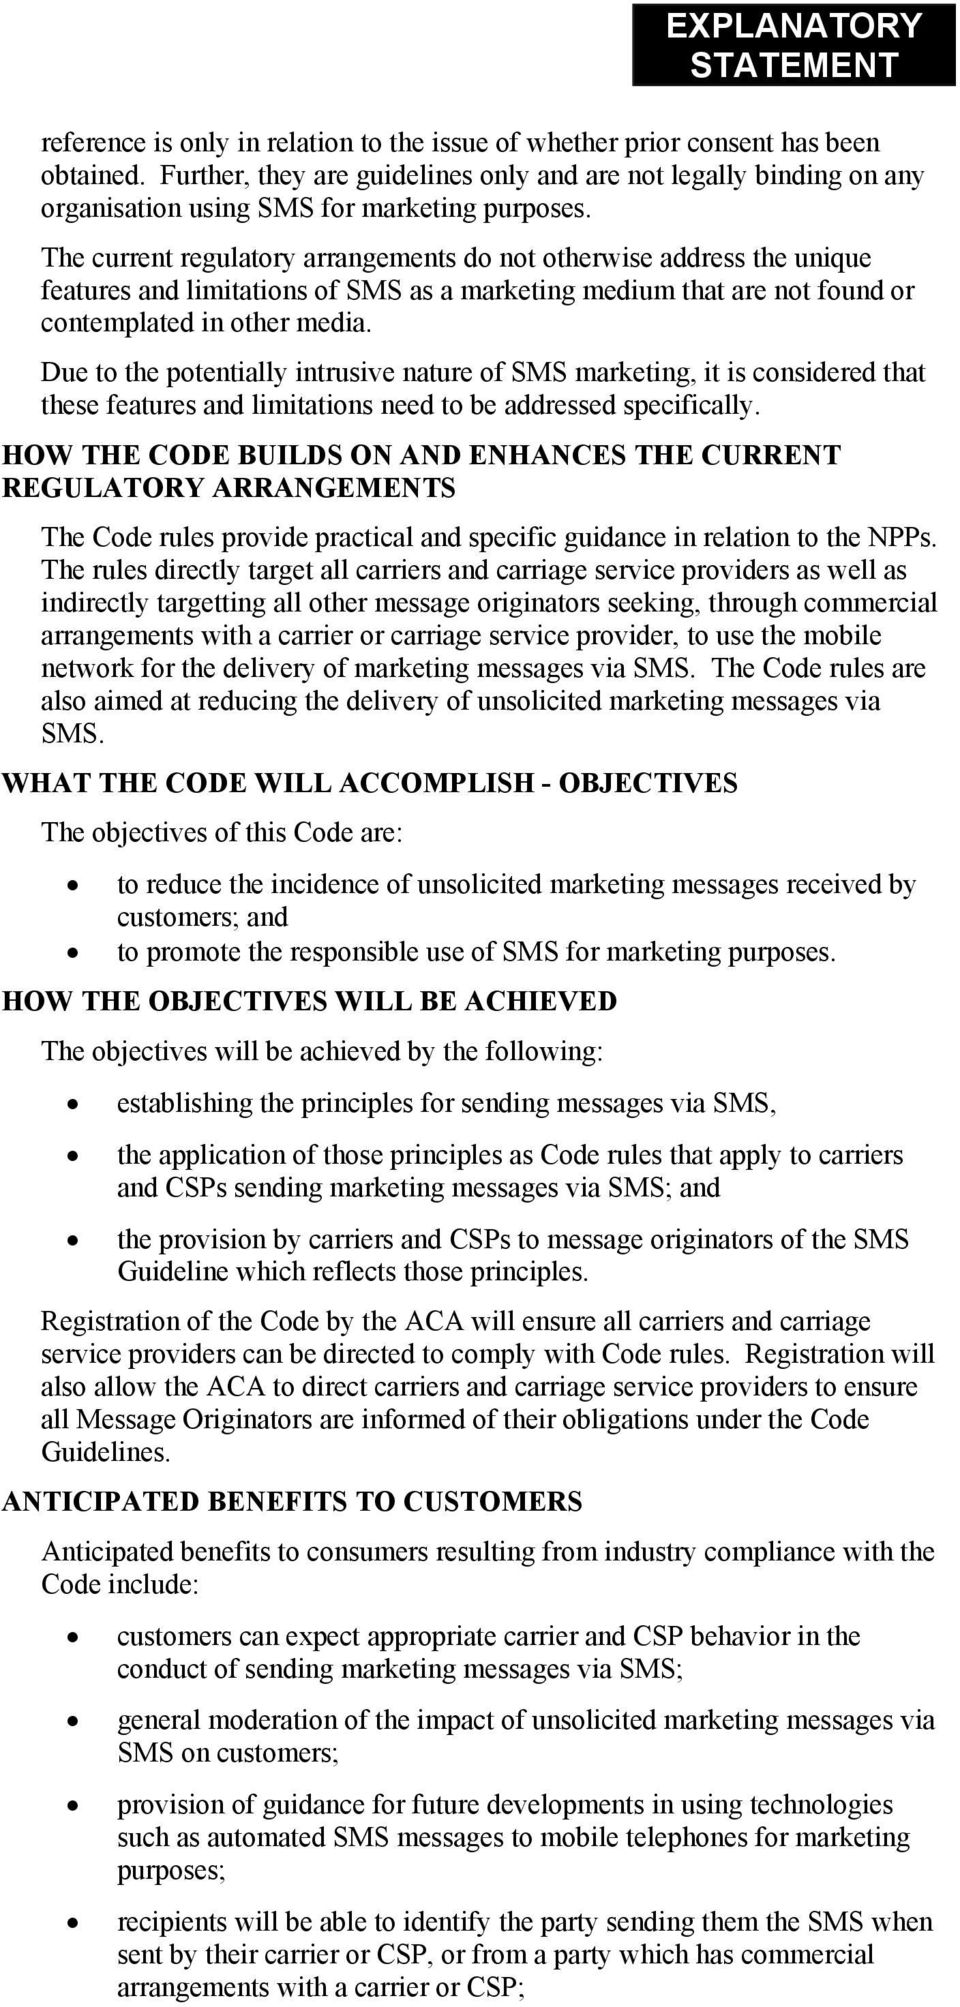 The current regulatory arrangements do not otherwise address the unique features and limitations of SMS as a marketing medium that are not found or contemplated in other media.